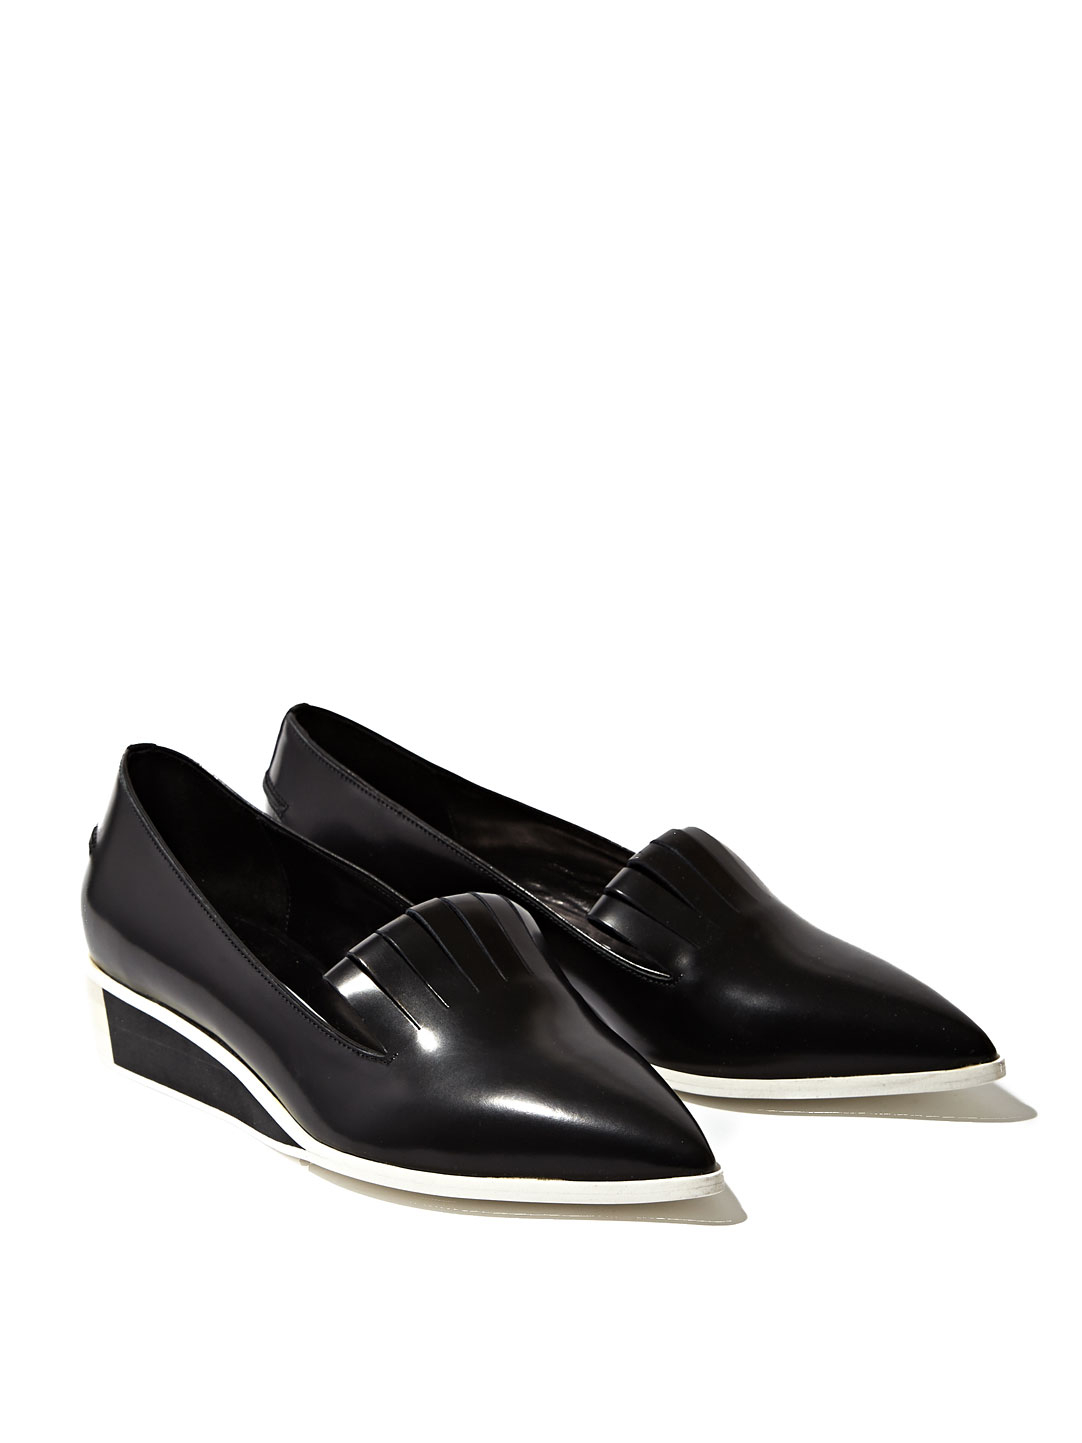 Lyst Acne Studios Philippa Flat Shoes In Black